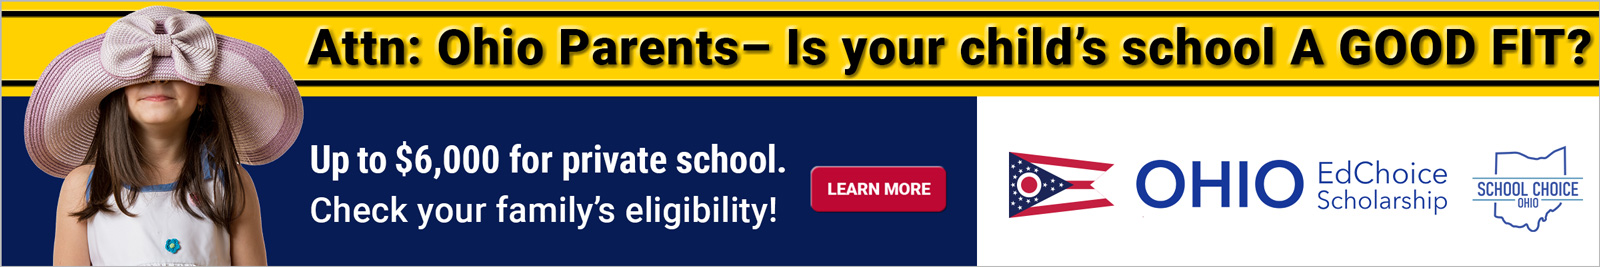 Is your child's school a good fit? EdChoice Scholarship 2021 — Get up to $6,000 for private school. Quickly check your family's eligibility!